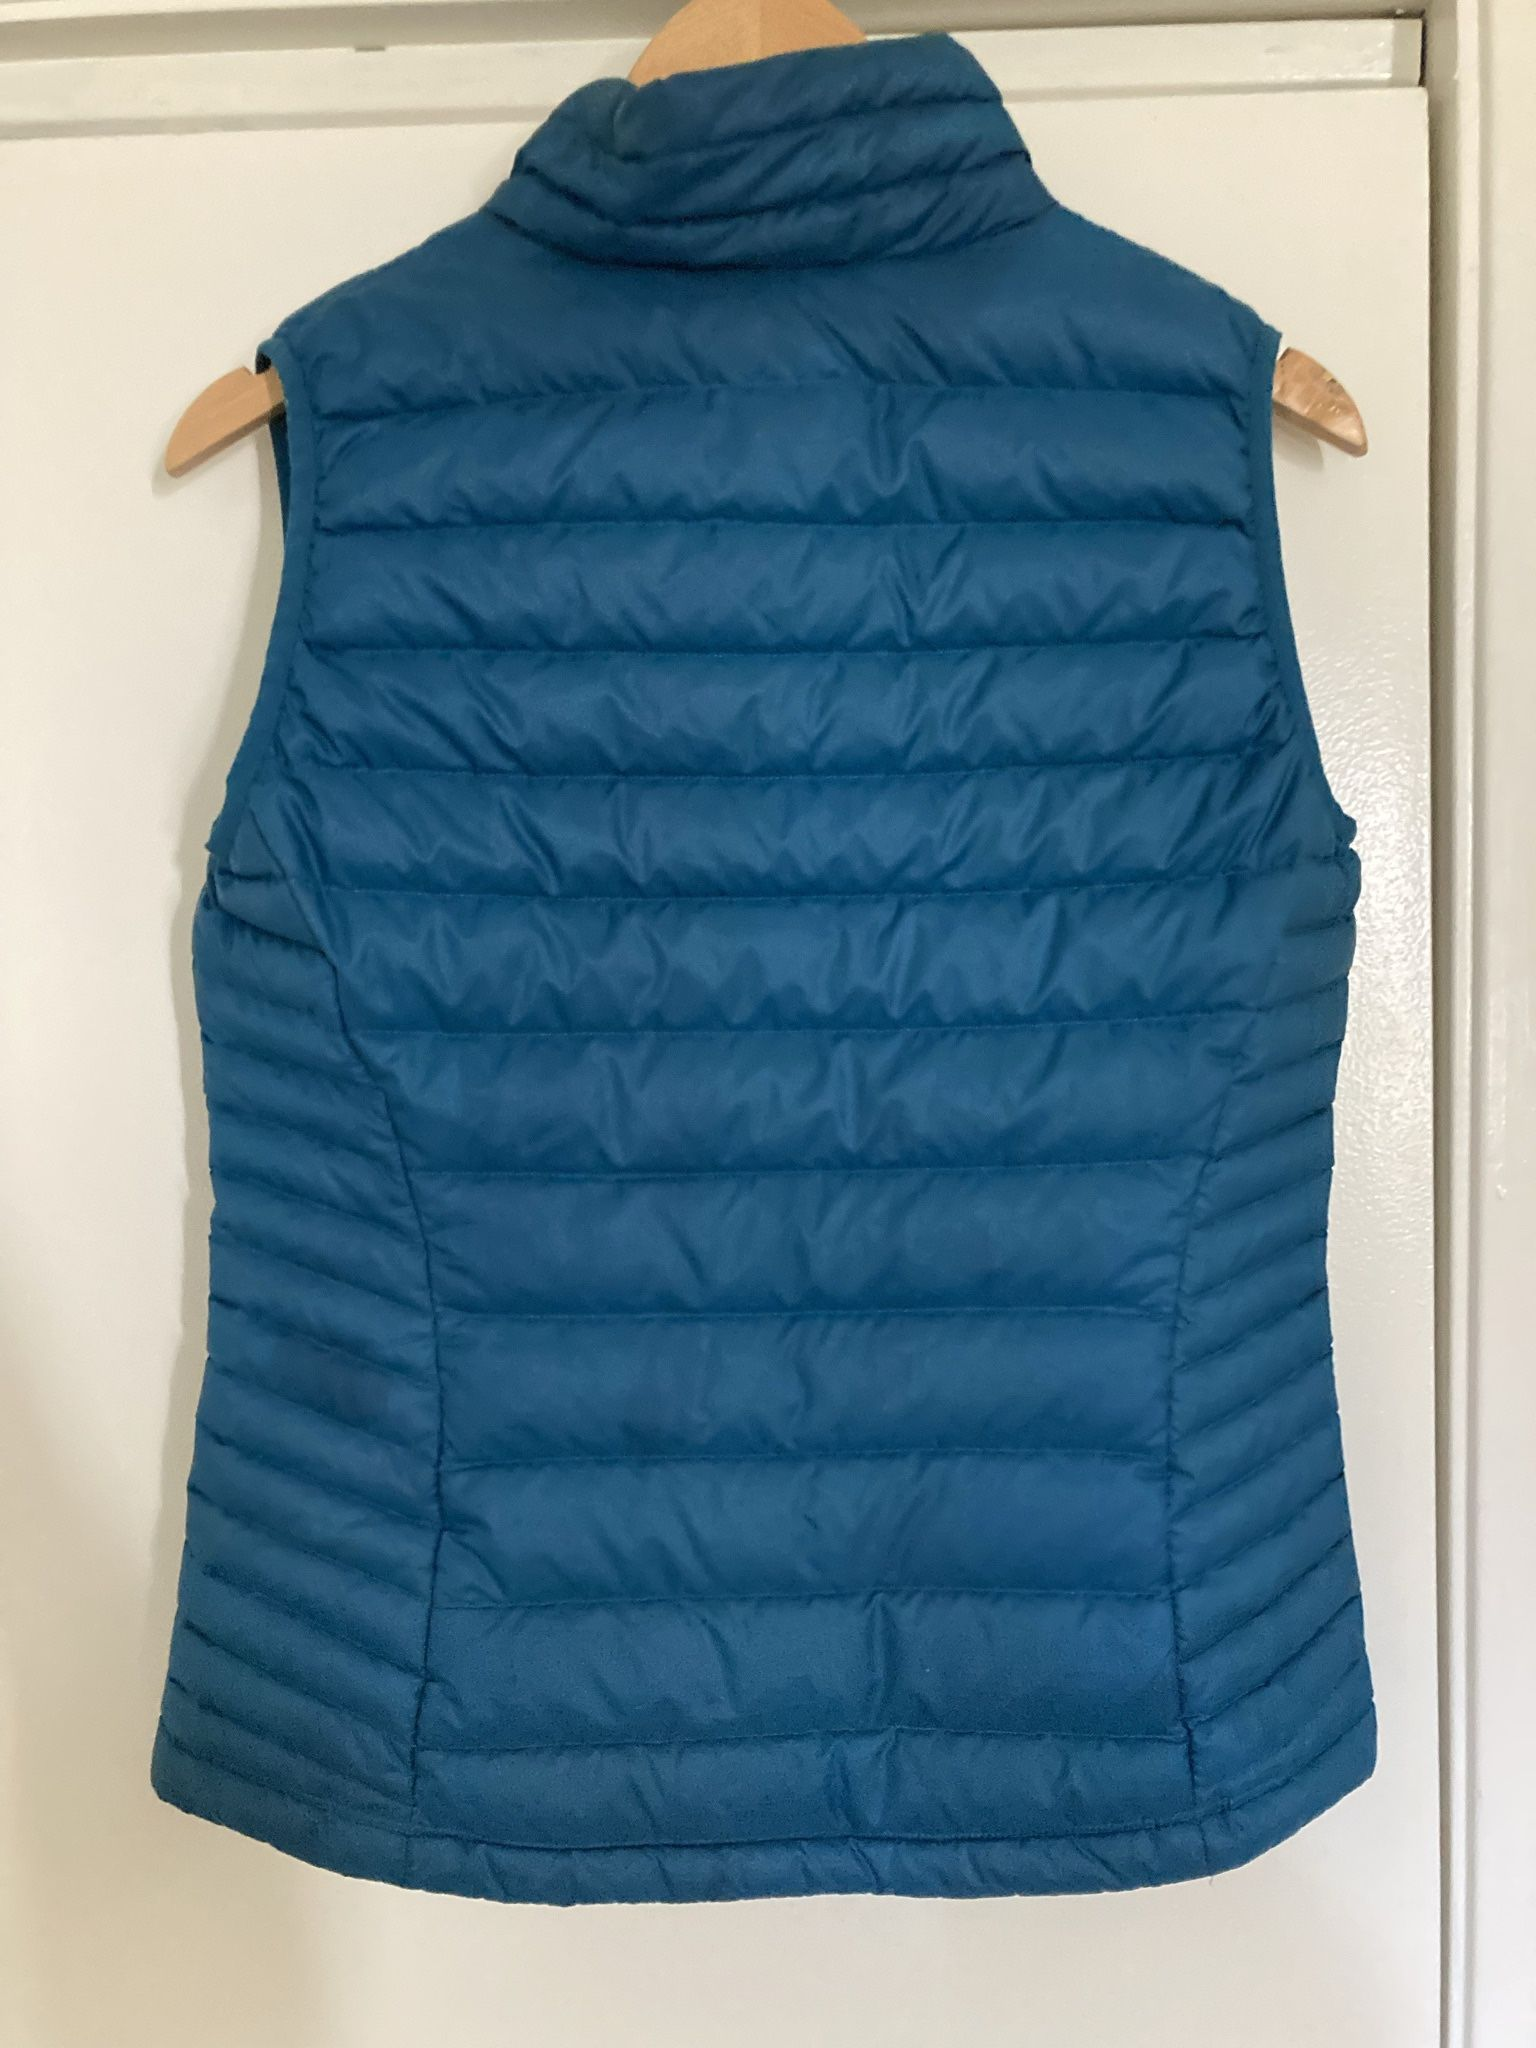 Patagonia Women's Small Vest